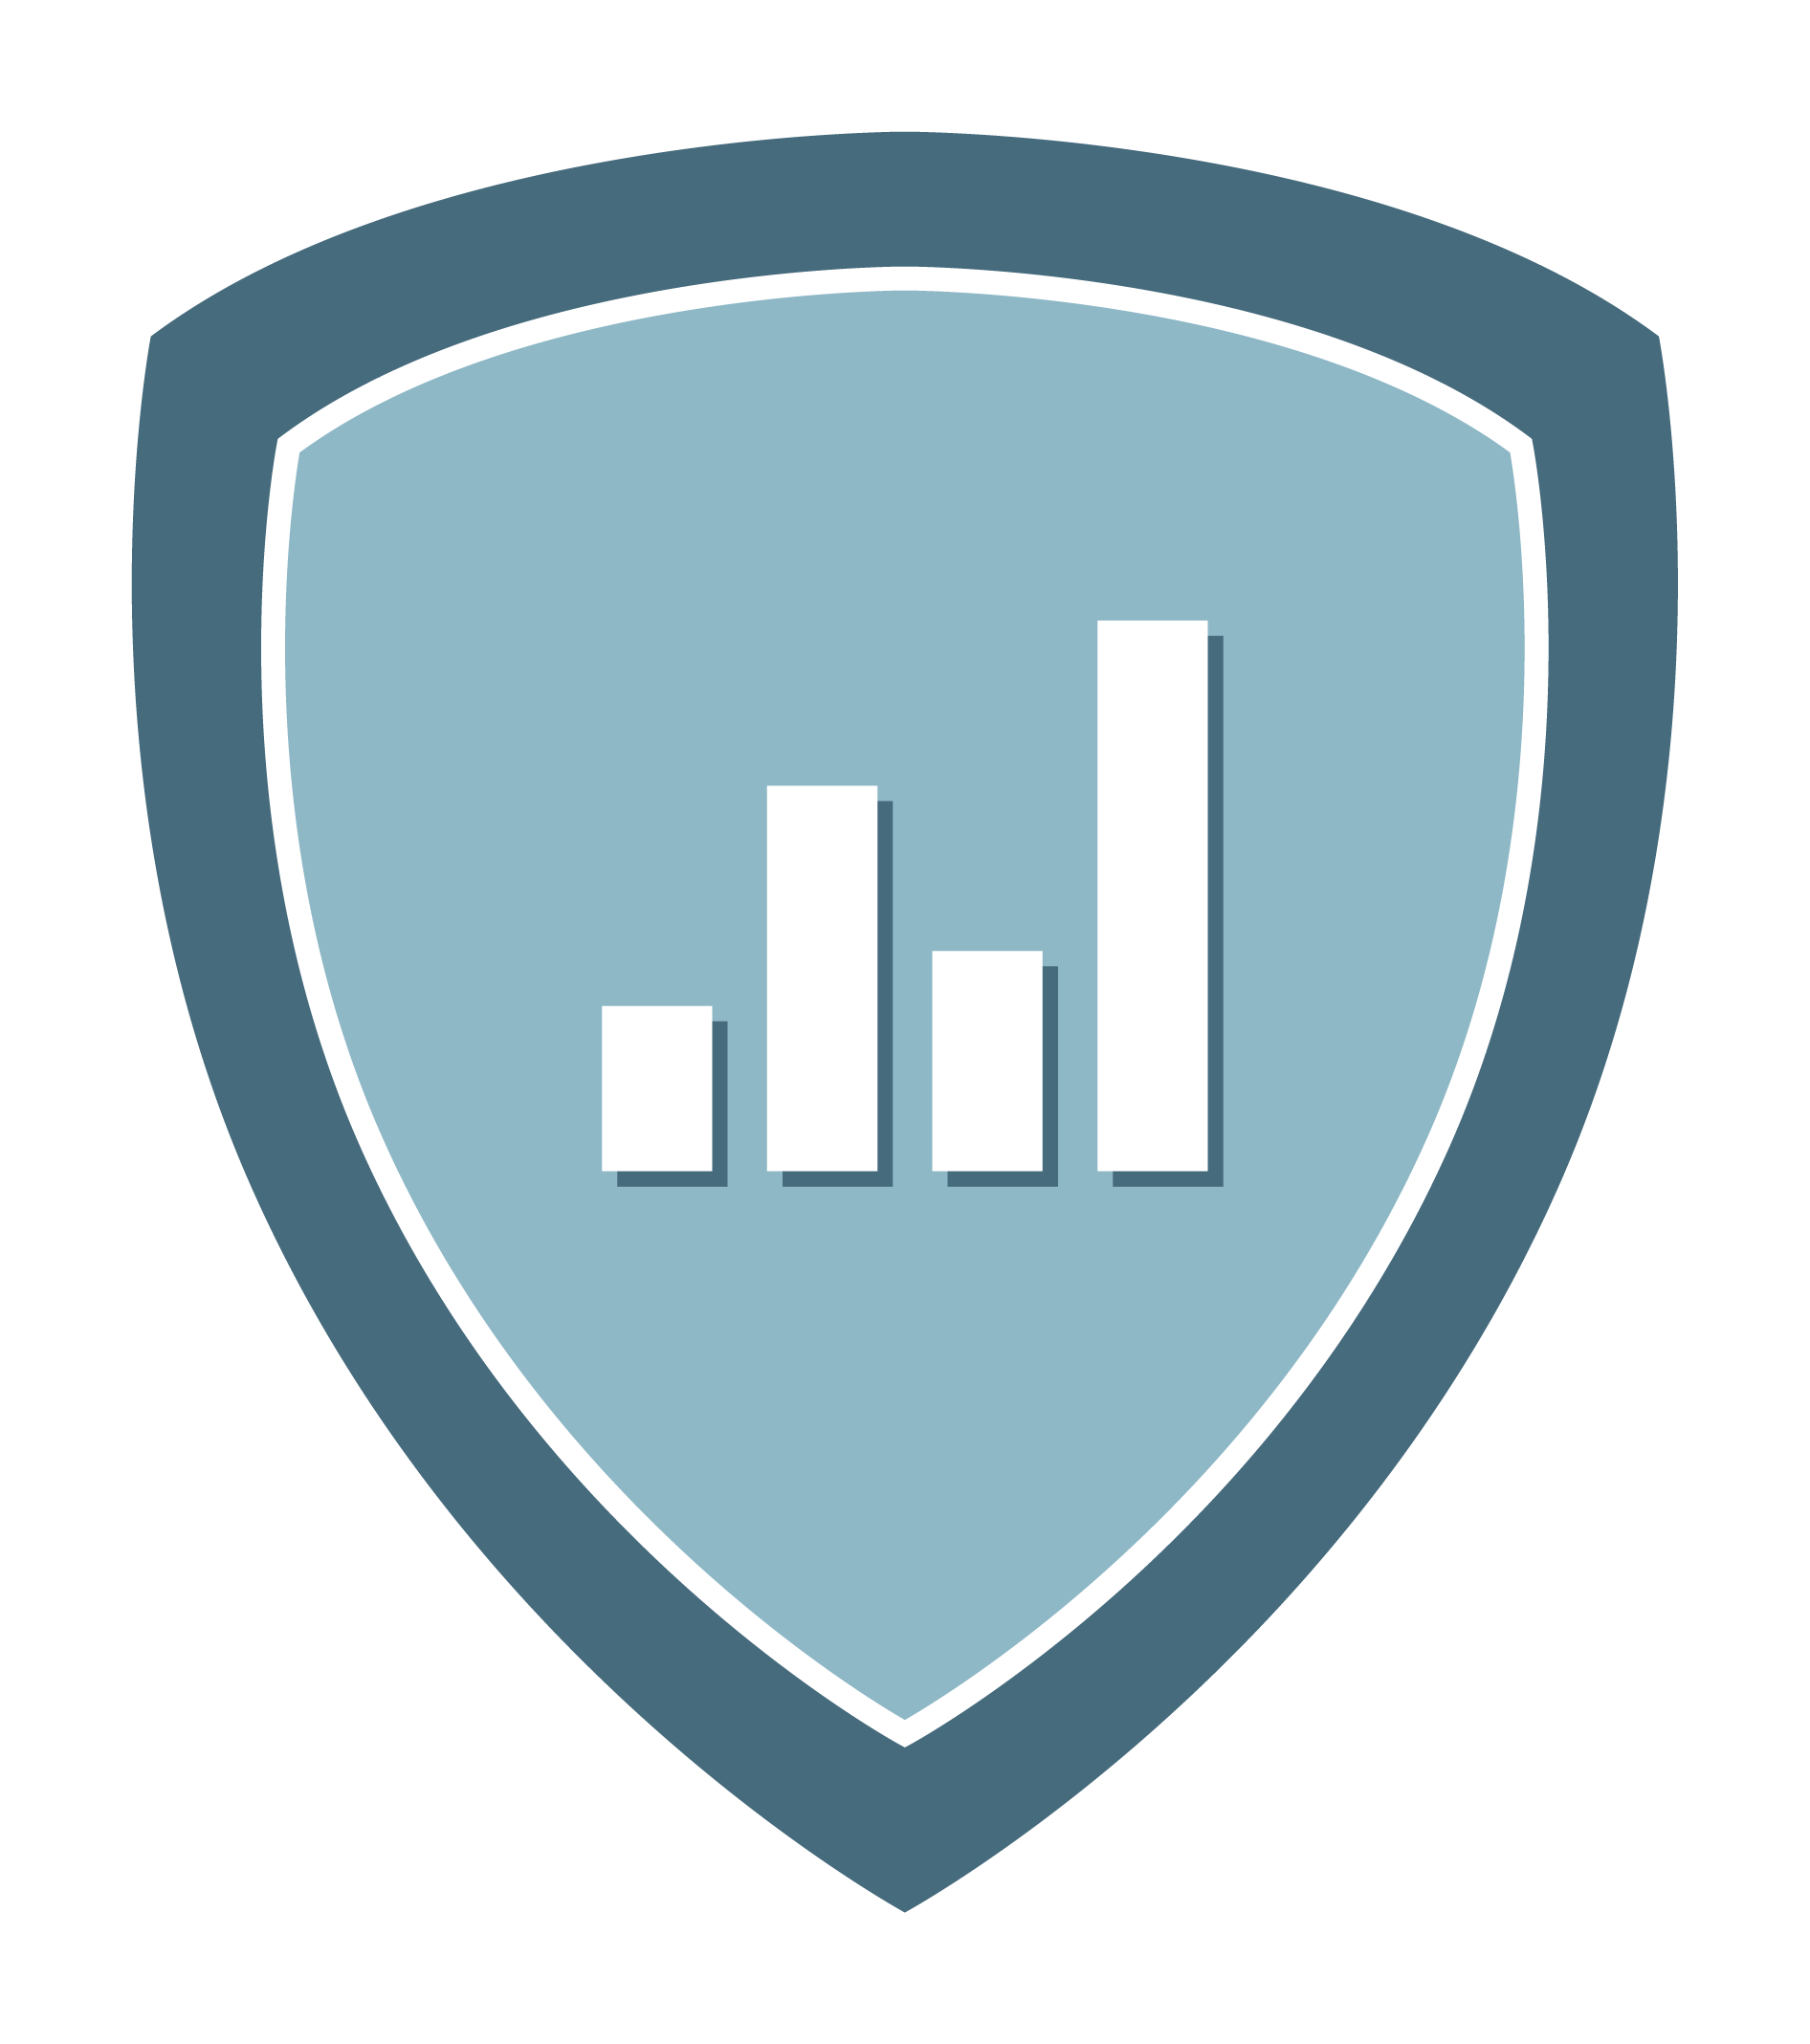 SurfWatch Analytics Shield